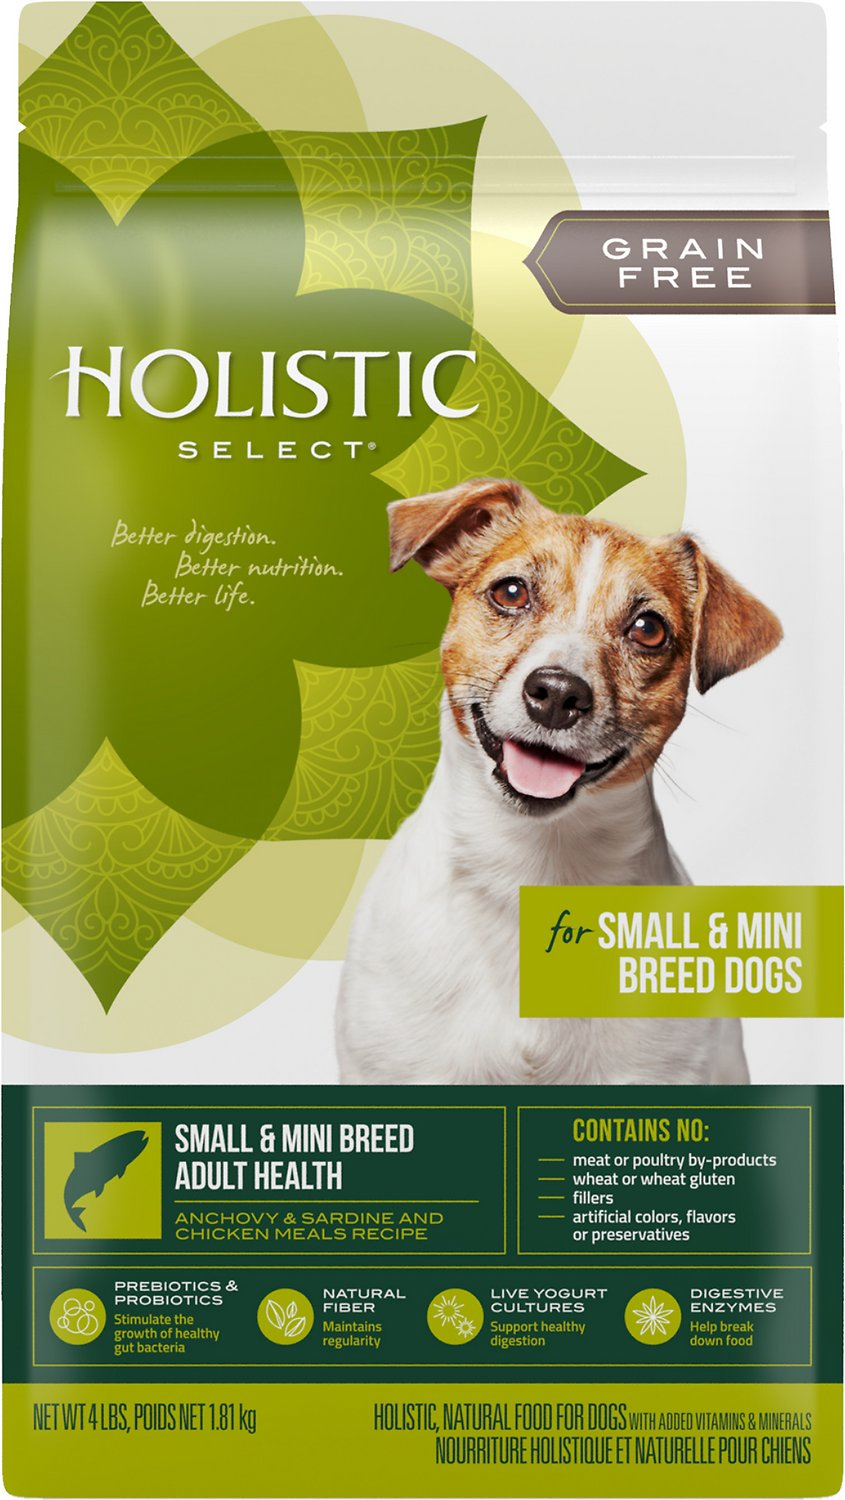 Holistic Select Small & Mini Breed Adult Health Anchovy, Sardine & Chicken Meals Recipe Dry Dog Food, 4-lb bag (Weights: 4.0 pounds) Image